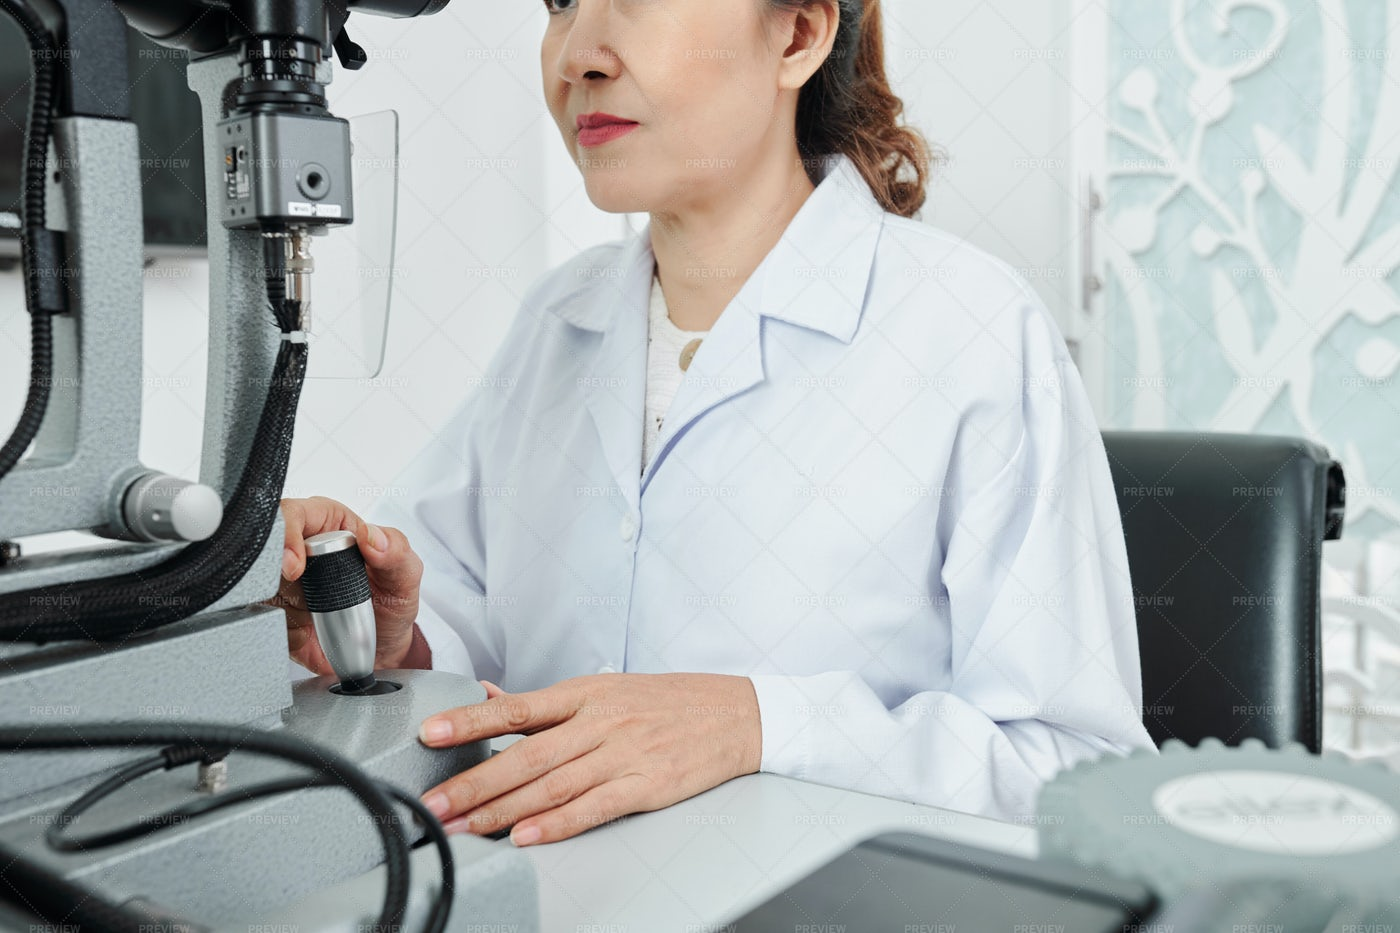 Doctor Working With Medical Equipment: Stock Photos